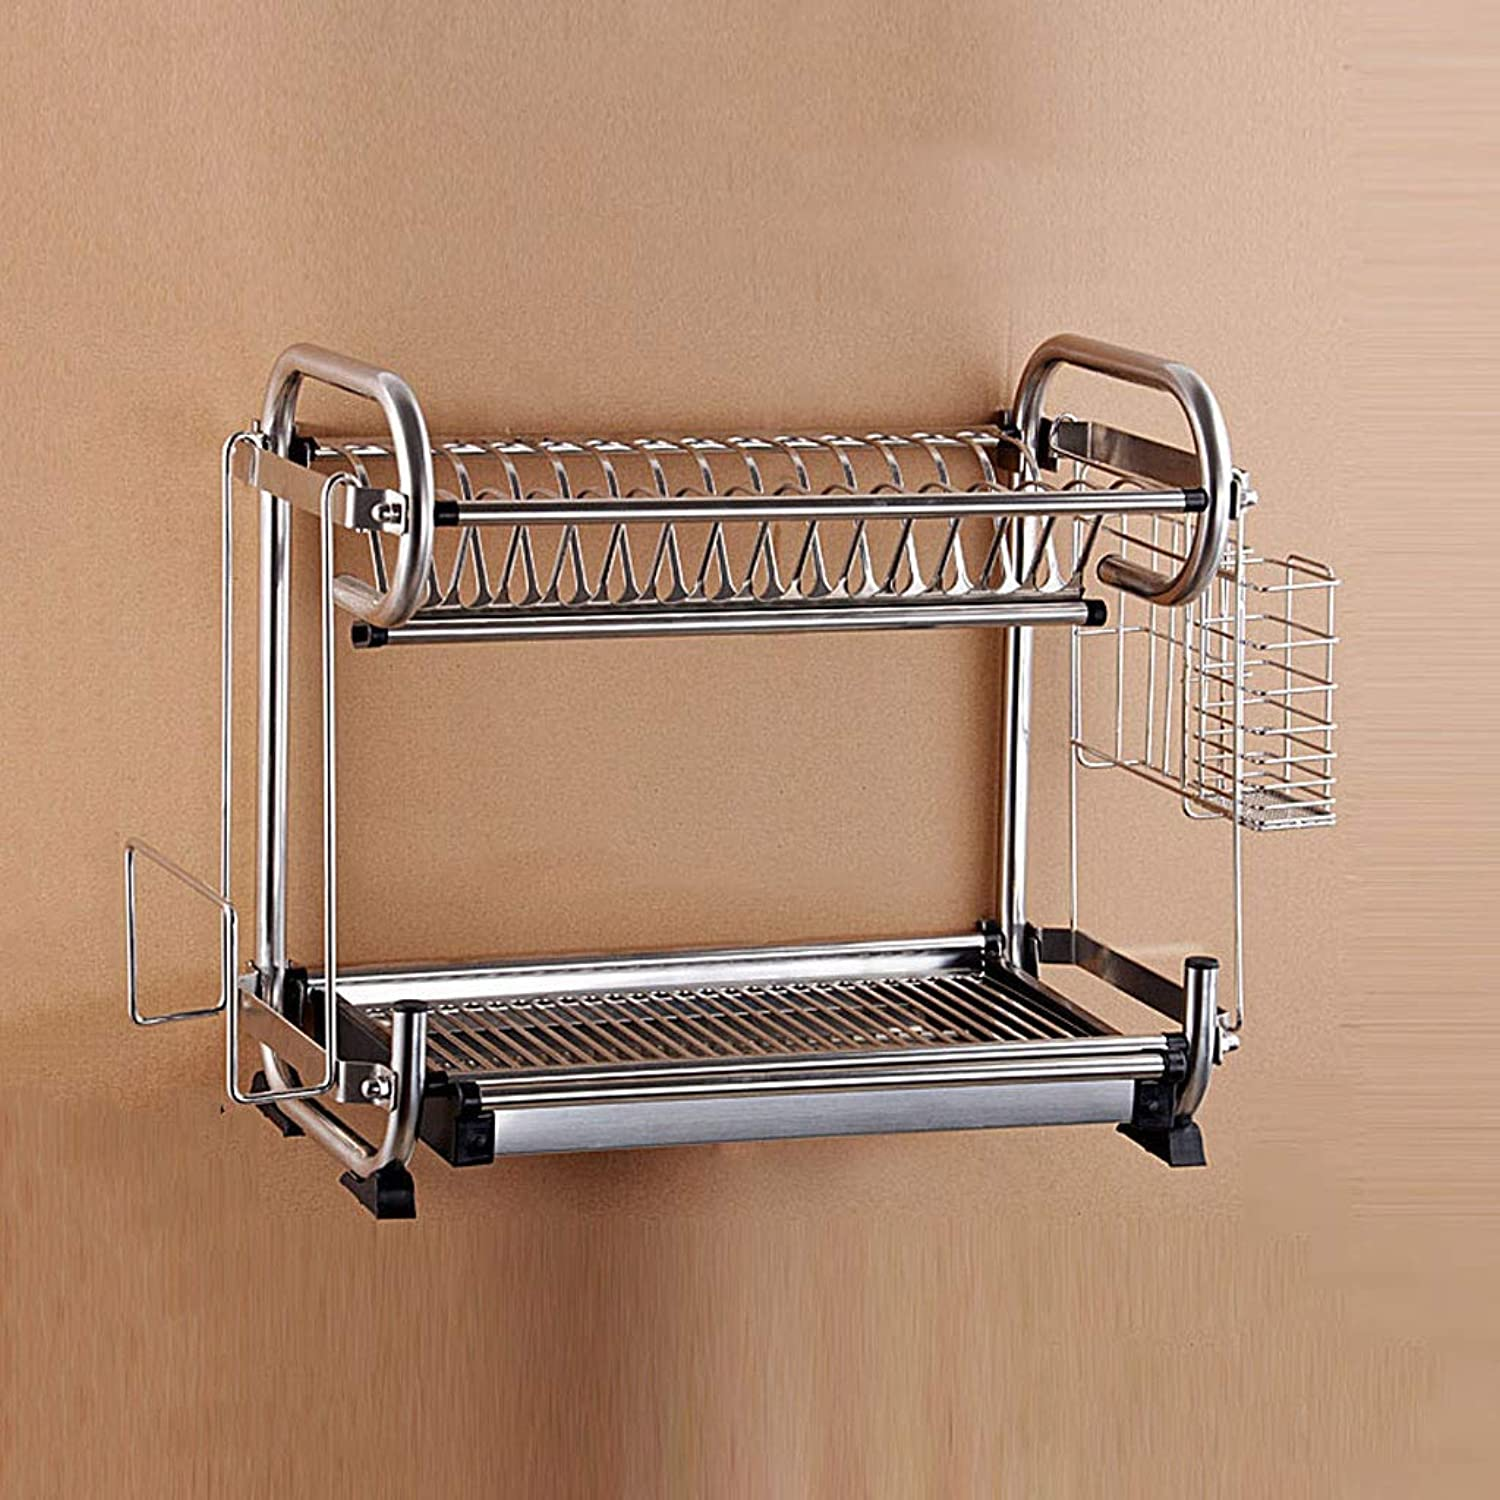 Multi-Function Wall-Mounted Kitchen Shelf or Stand, Kitchen Rack Double Stainless Steel Dish Rack Drain Rack Dish Rack Knife Holder Cup Holder (Size  47  25  39cm)